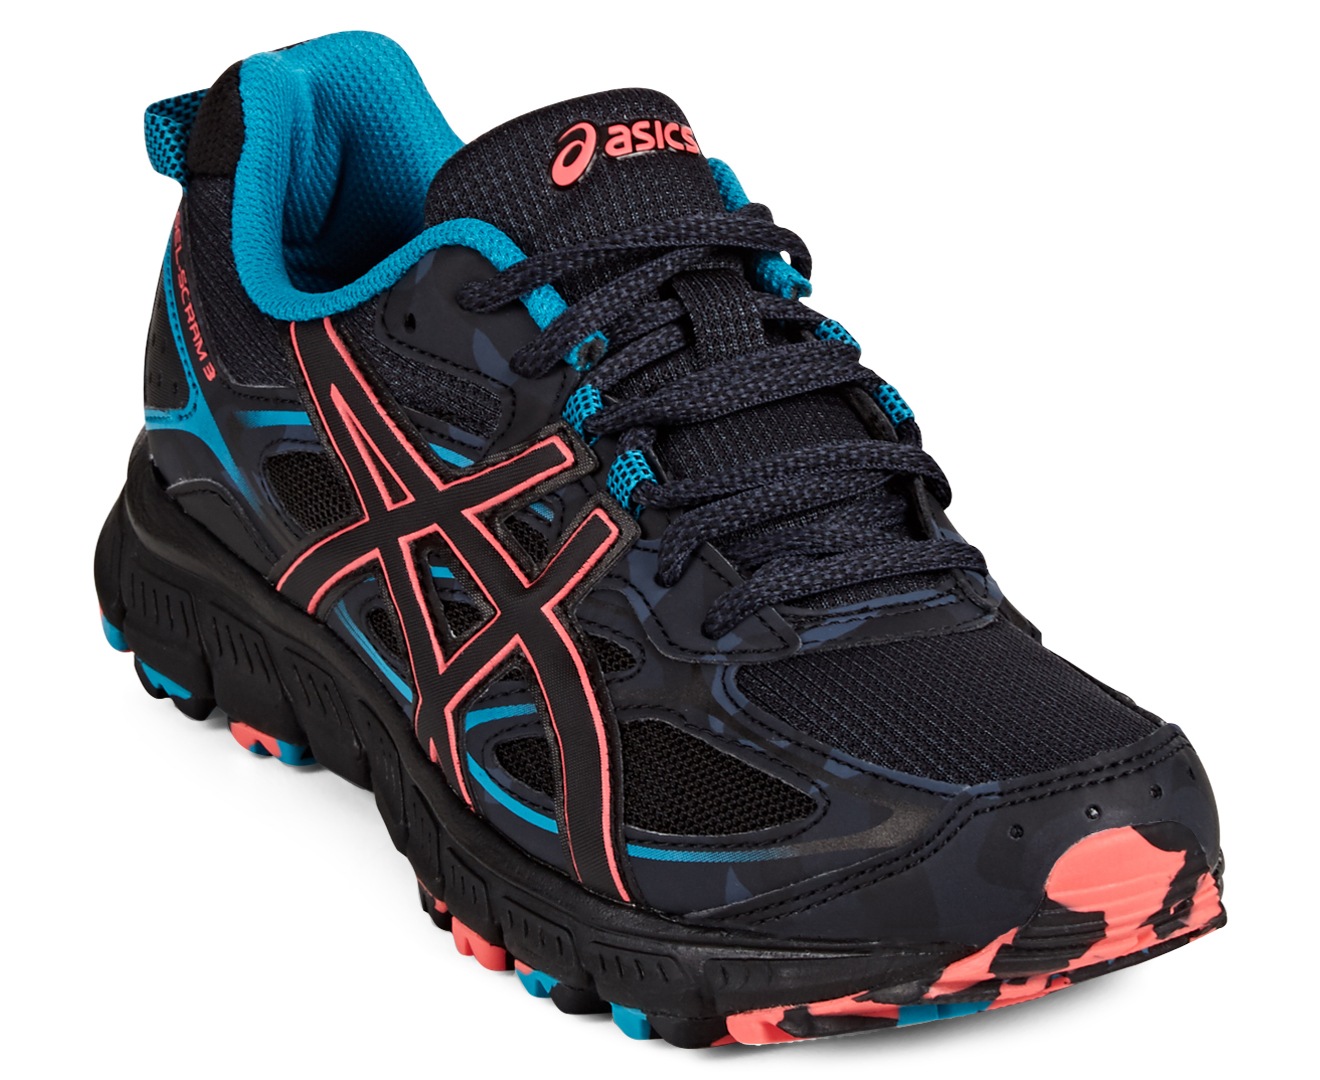 new arrival 42fa0 303c4 ASICS Women's GEL-Scram 3 - Anthracite/Black/Columbia Sea